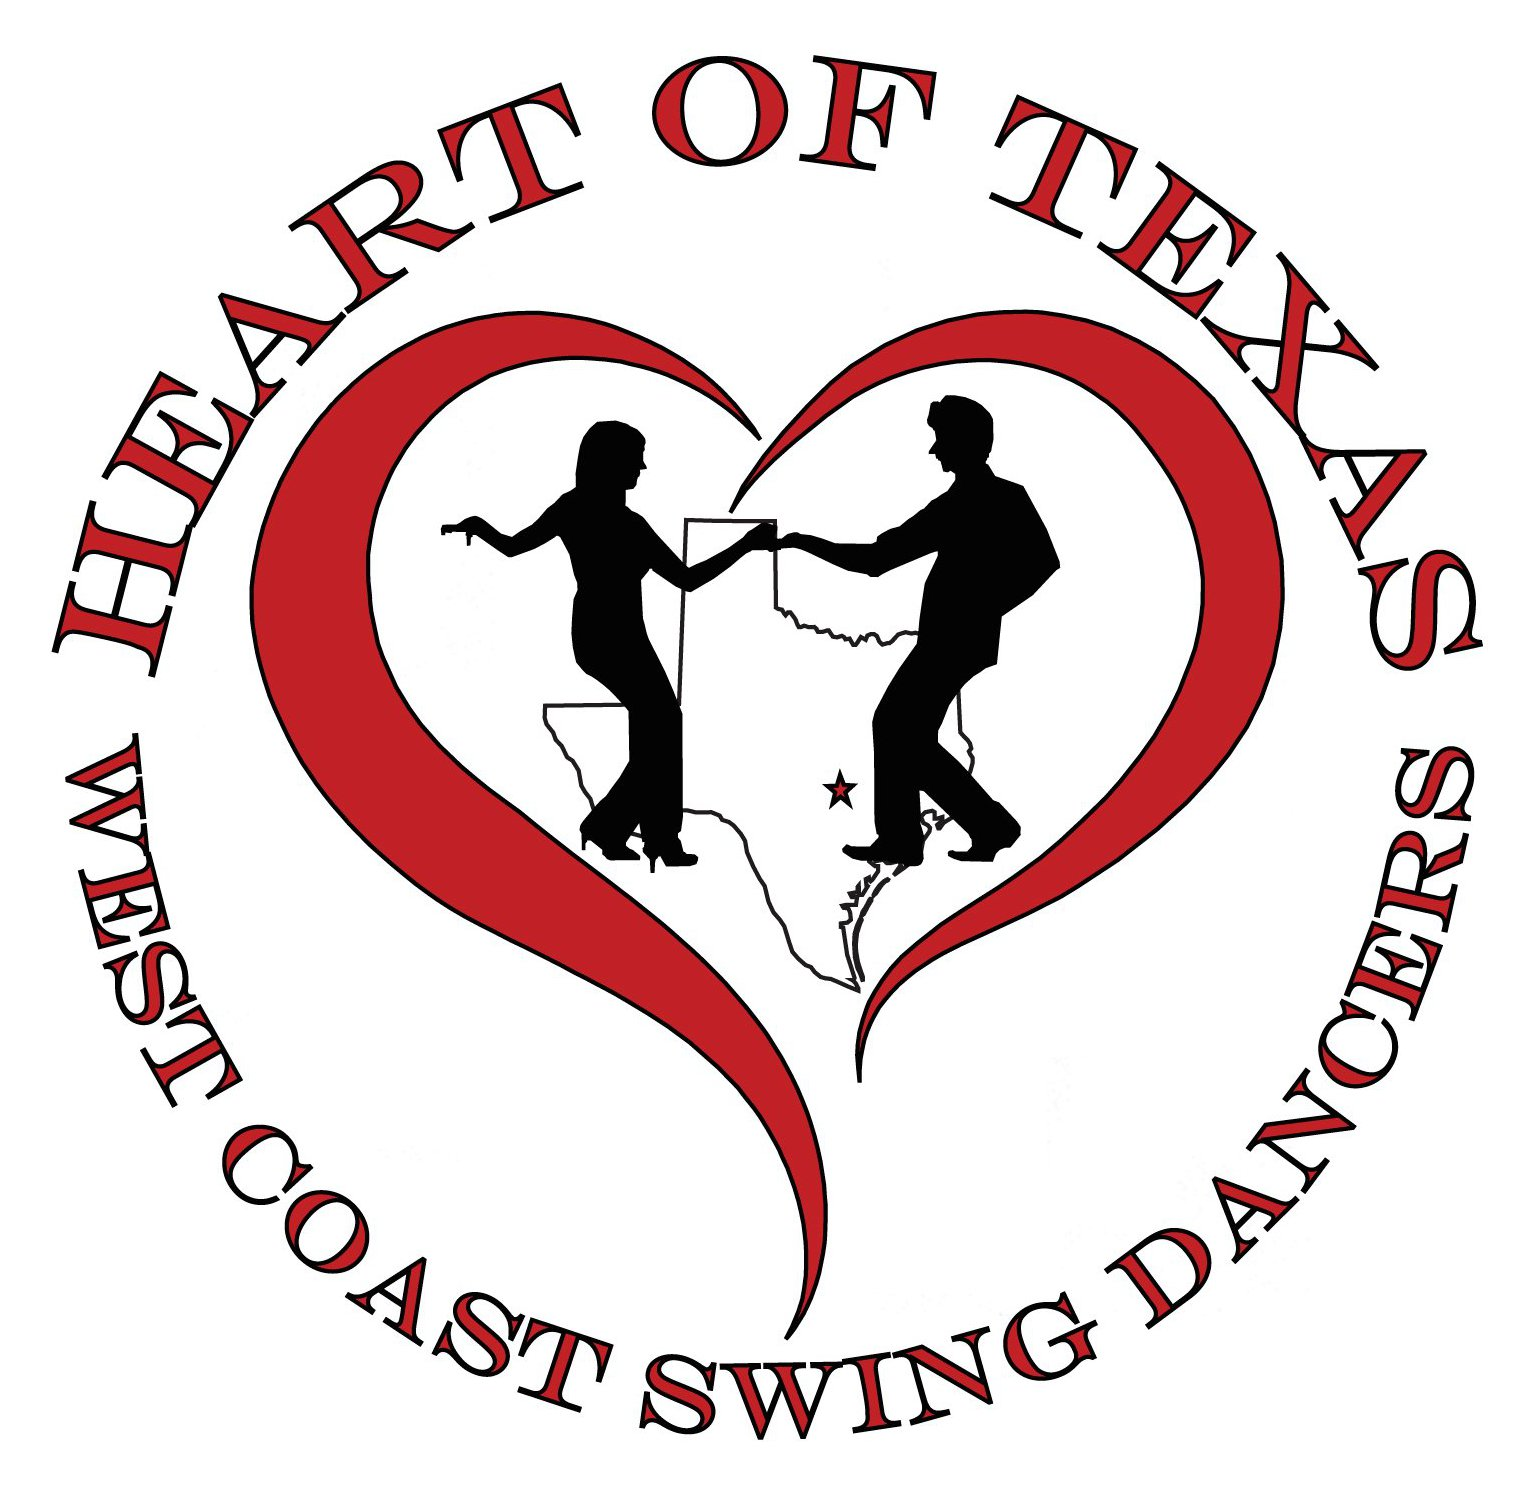 Heart of Texas West Coast Dance Club